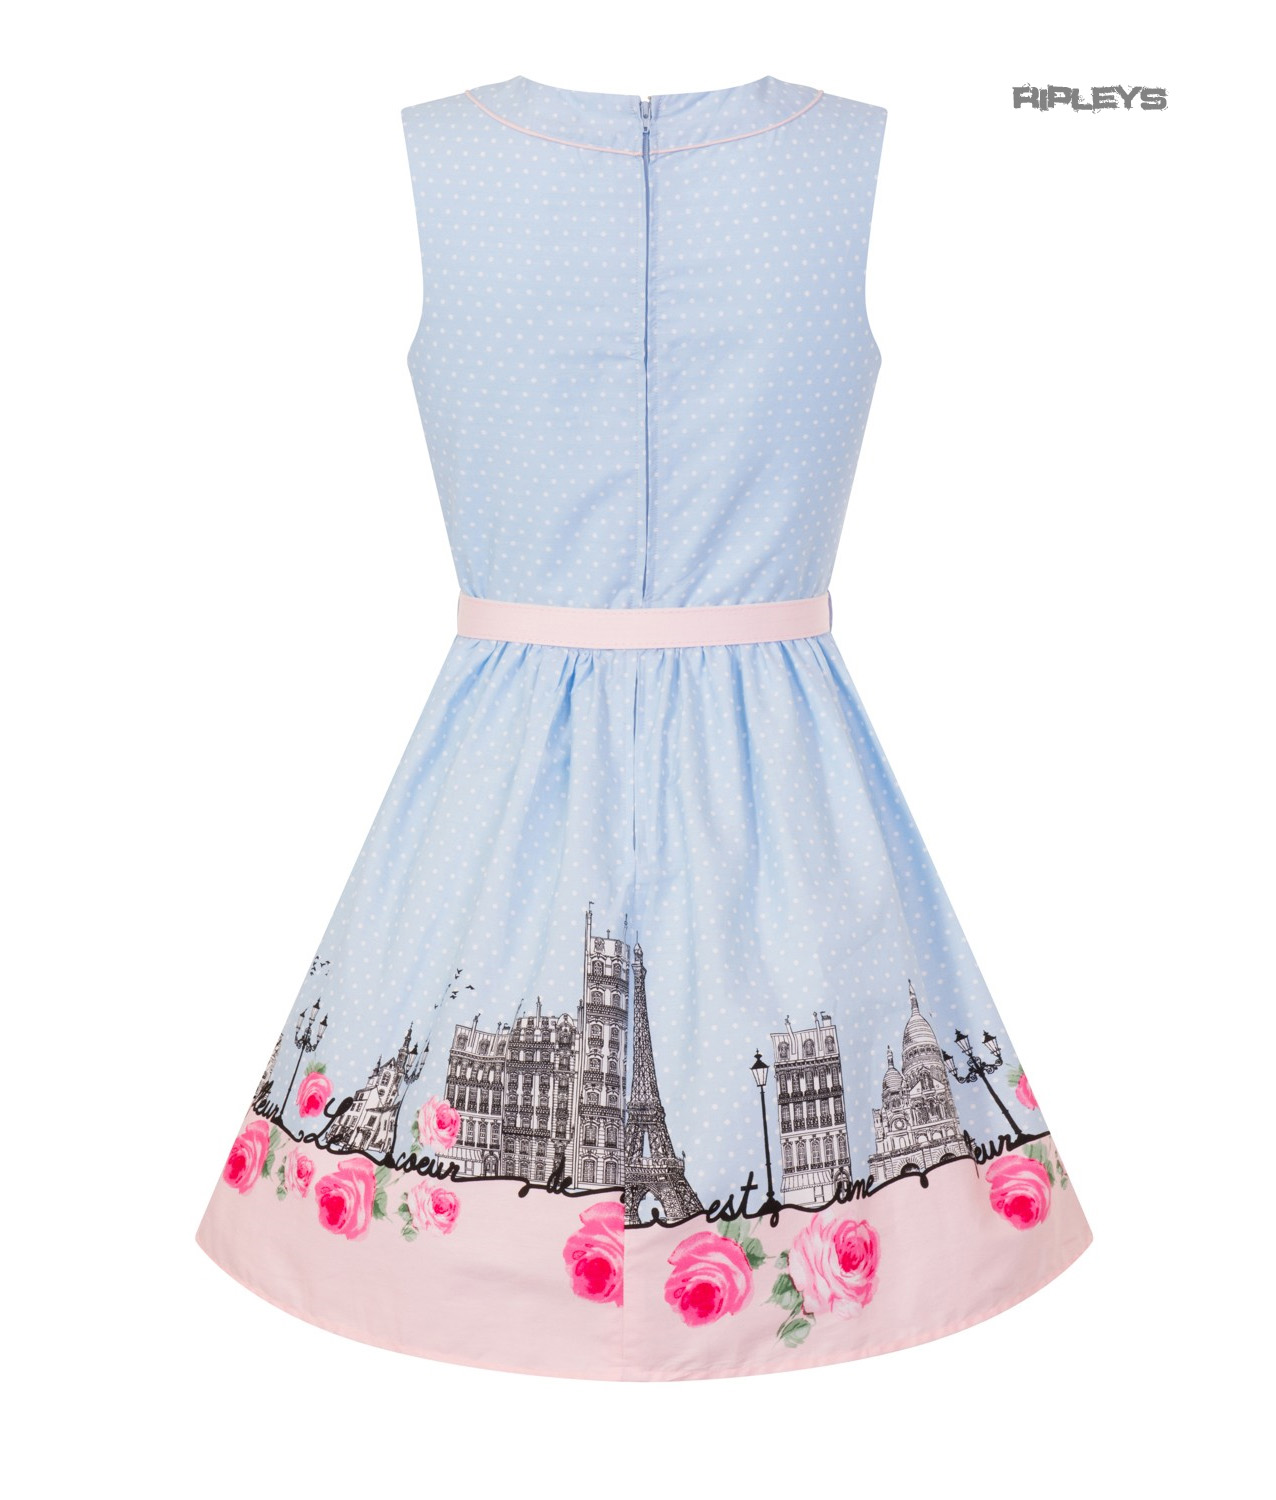 Hell-Bunny-50s-Vintage-Blue-Polka-Dot-PANAME-Mini-Dress-Paris-All-Sizes thumbnail 48